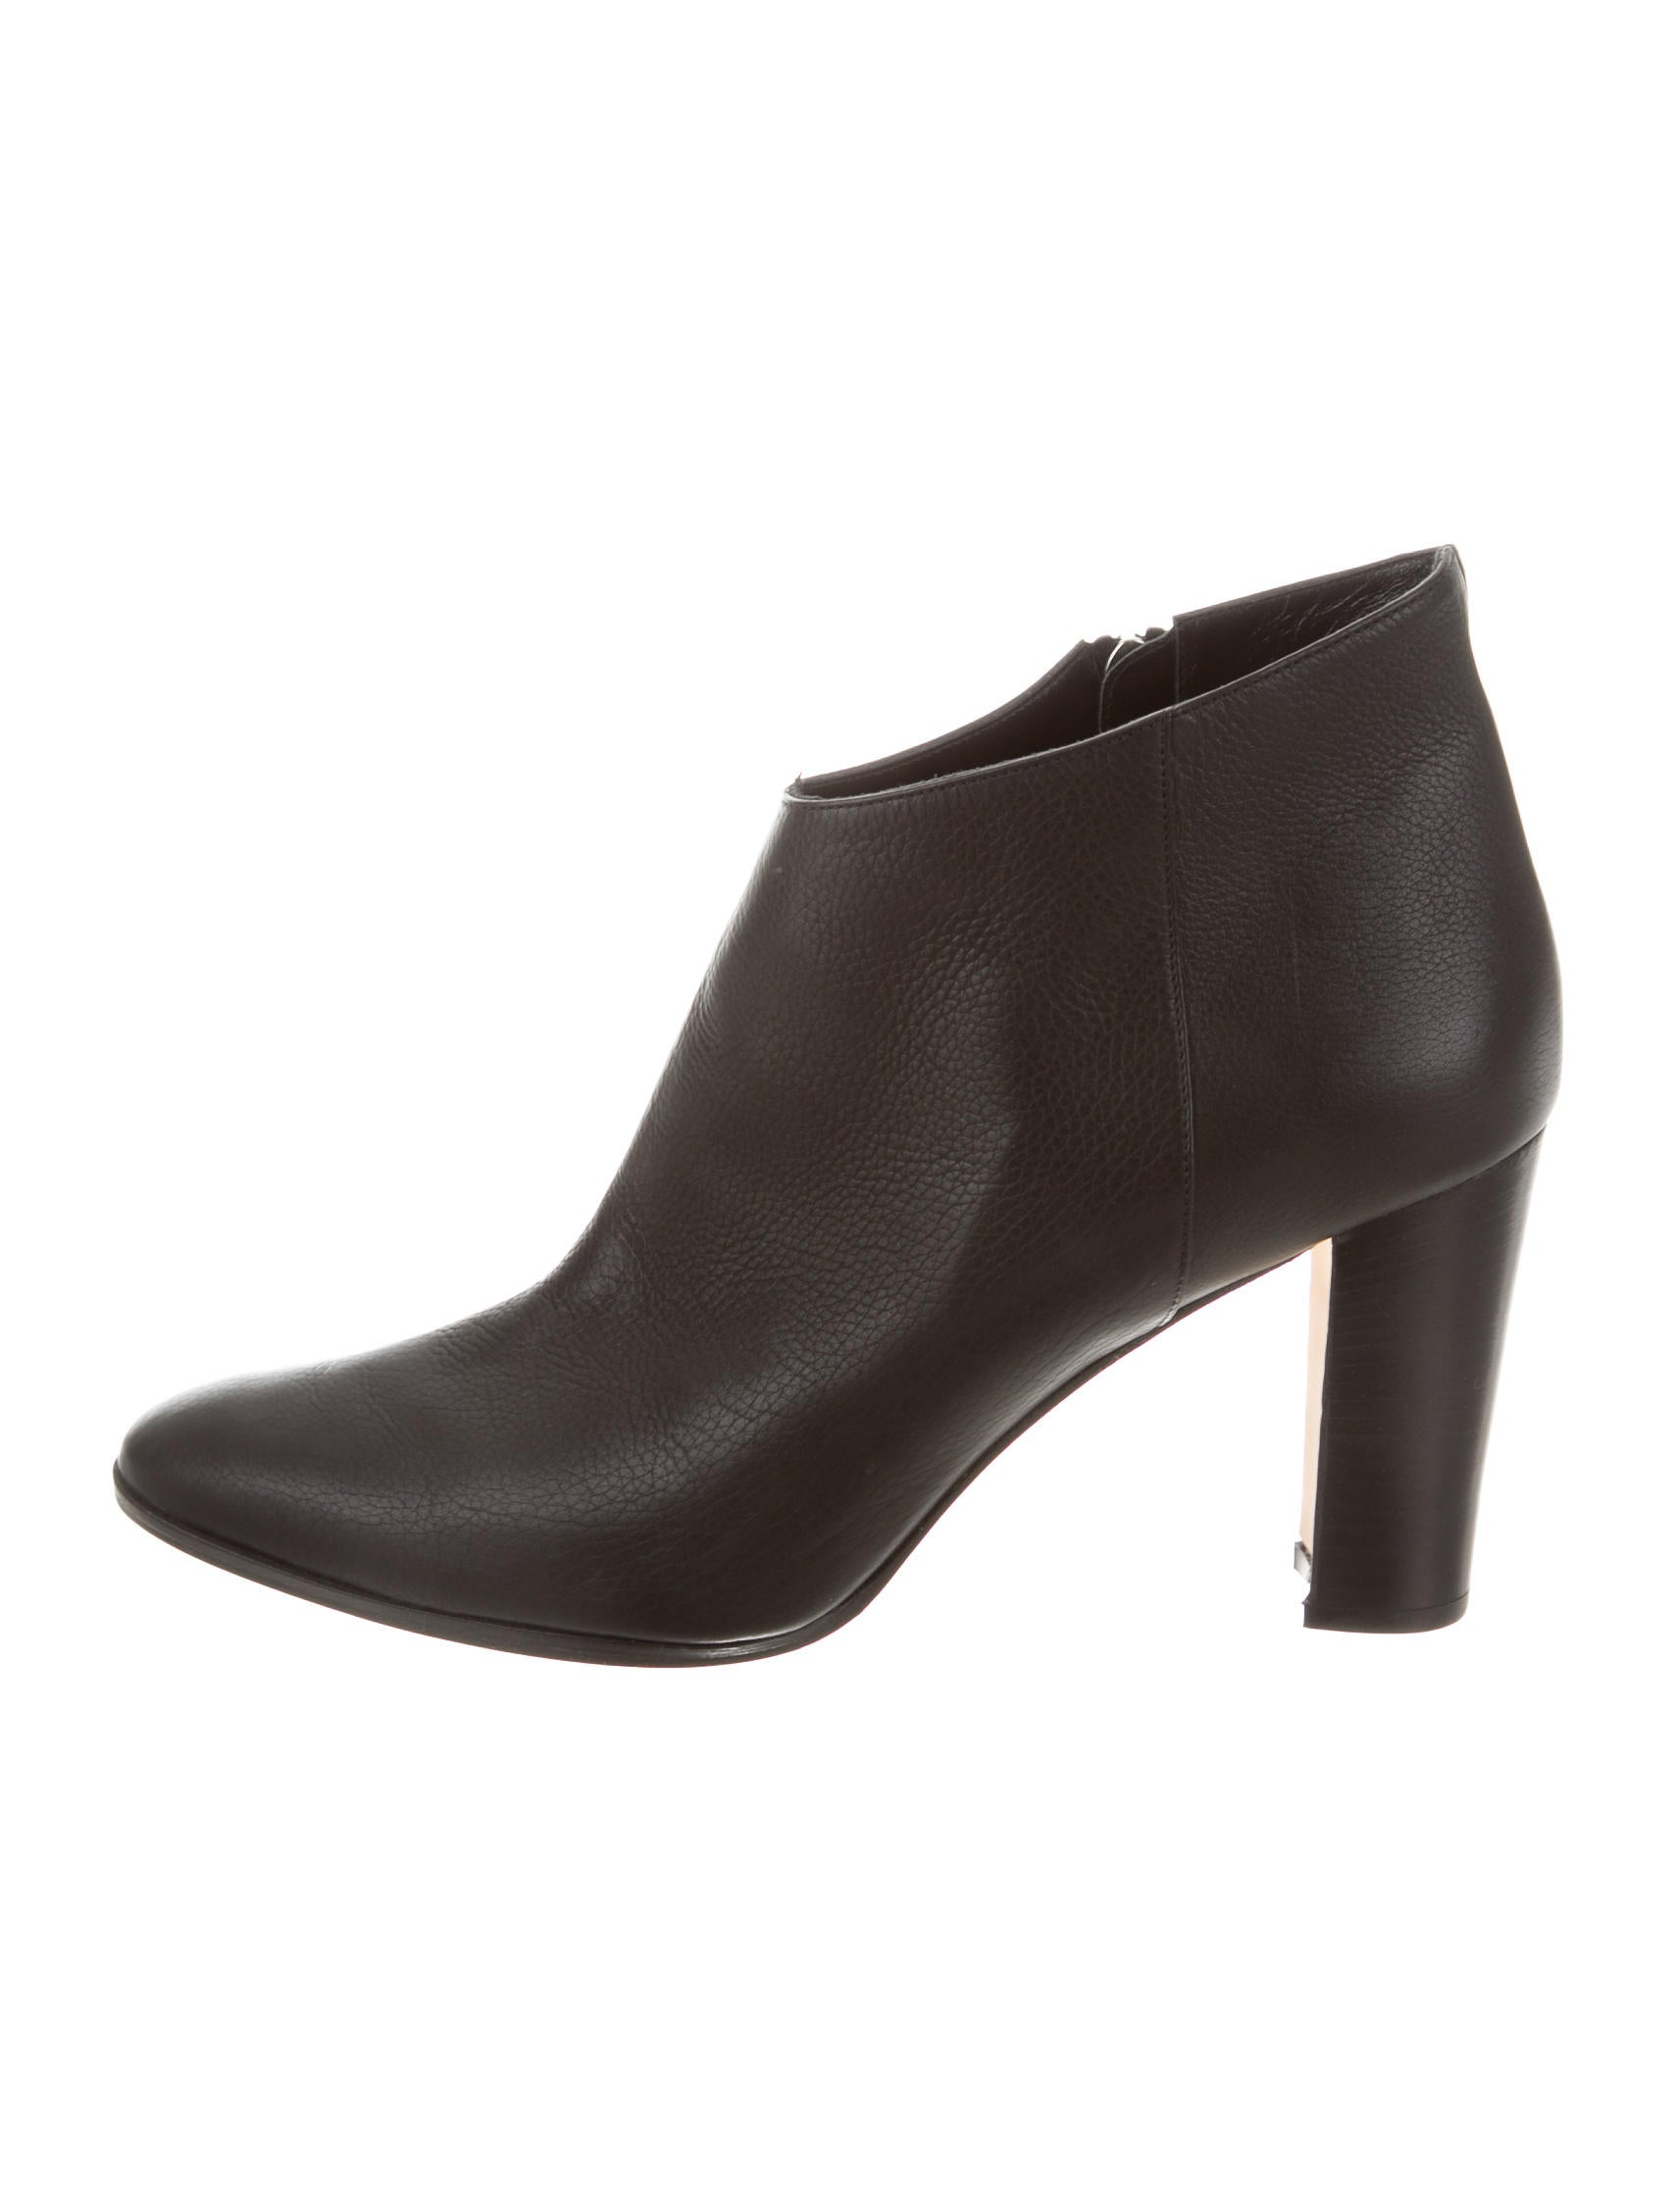 cheap discount clearance shop Manolo Blahnik Brusta Ankle Boots w/ Tags great deals for sale buy cheap big sale cheap order YID0CdV0CJ